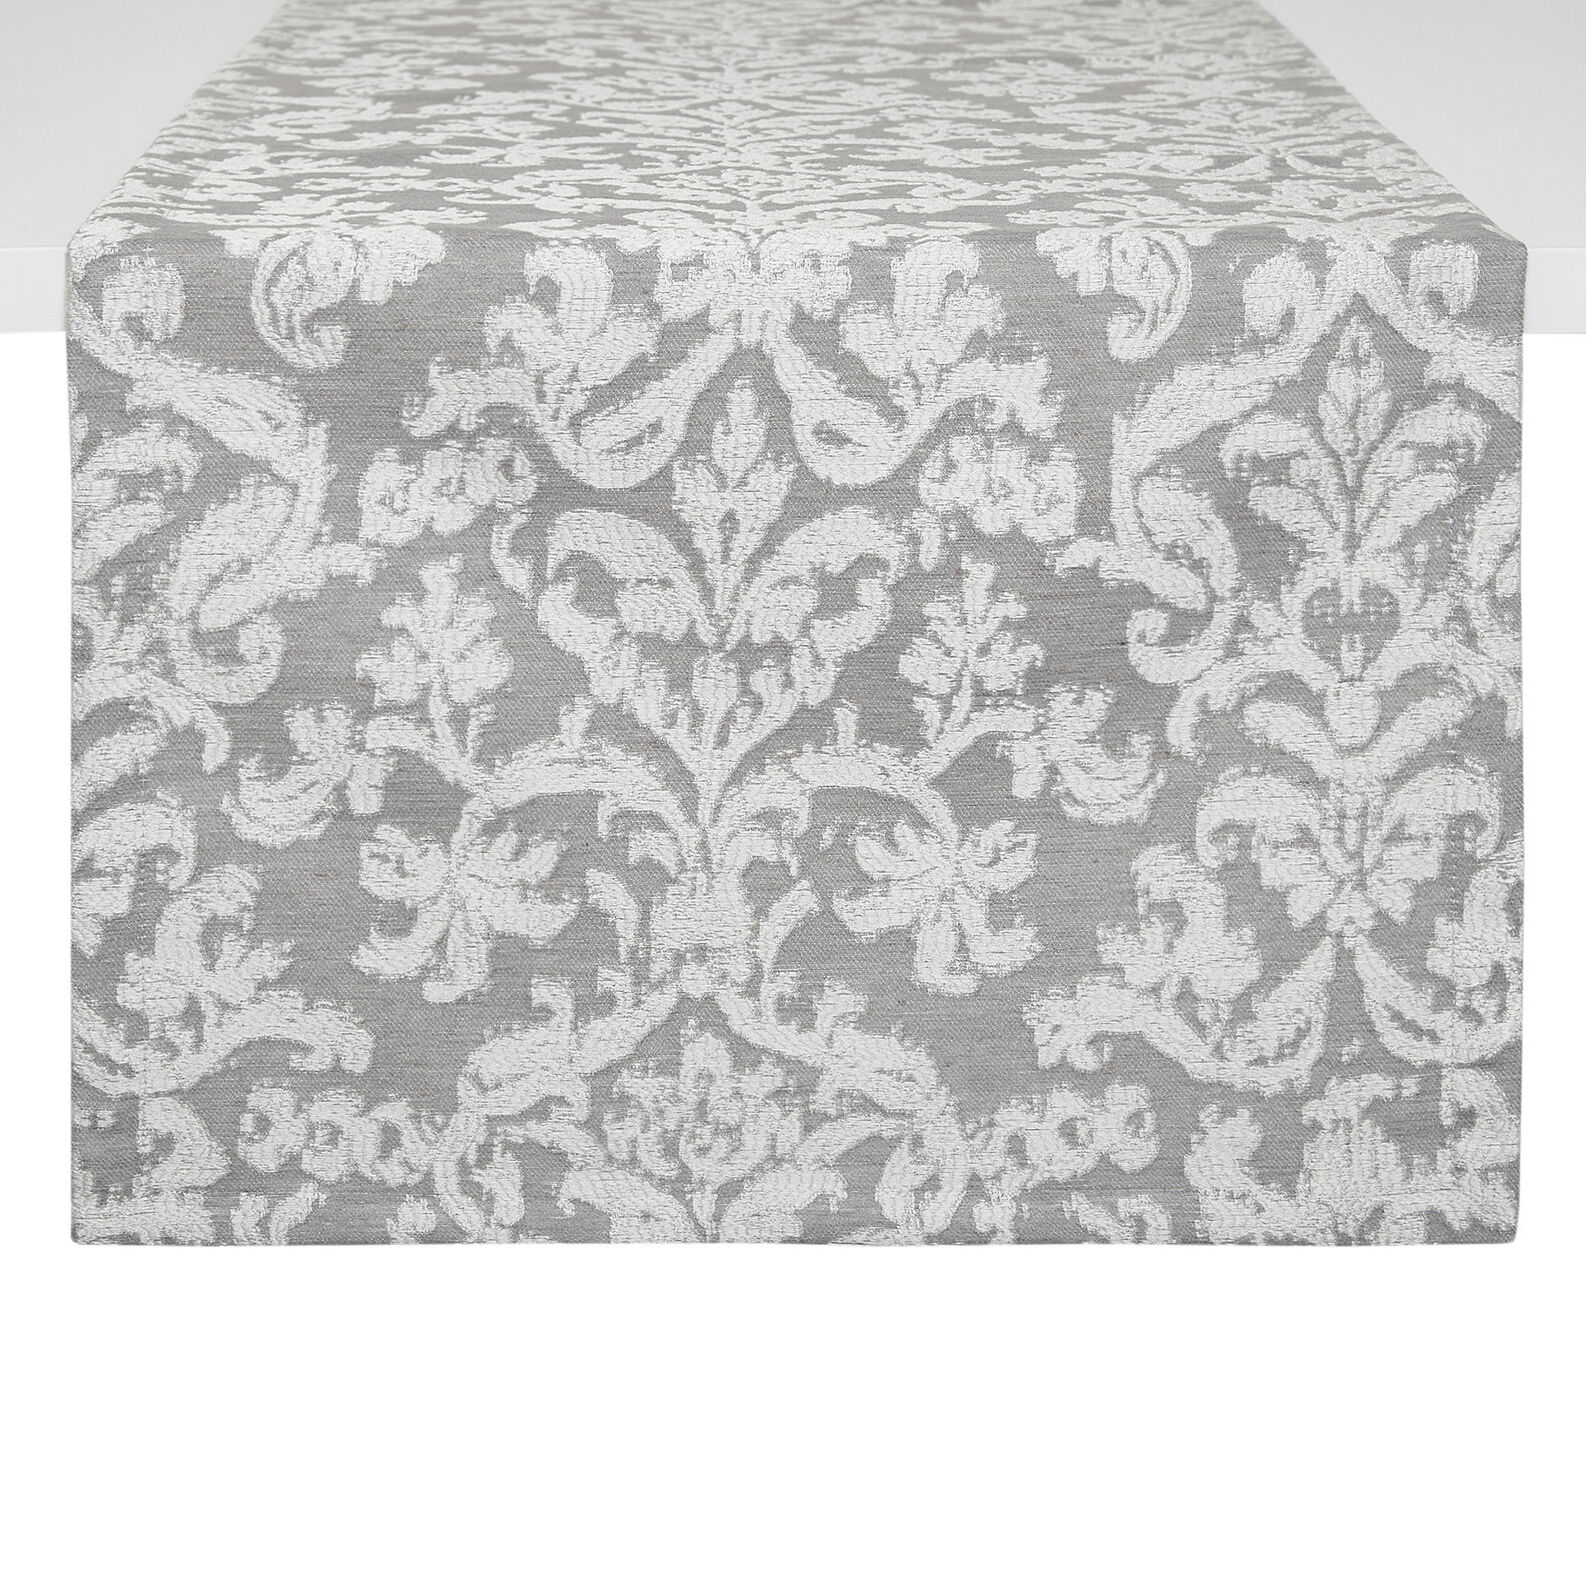 Fabric table runner with jacquard weave